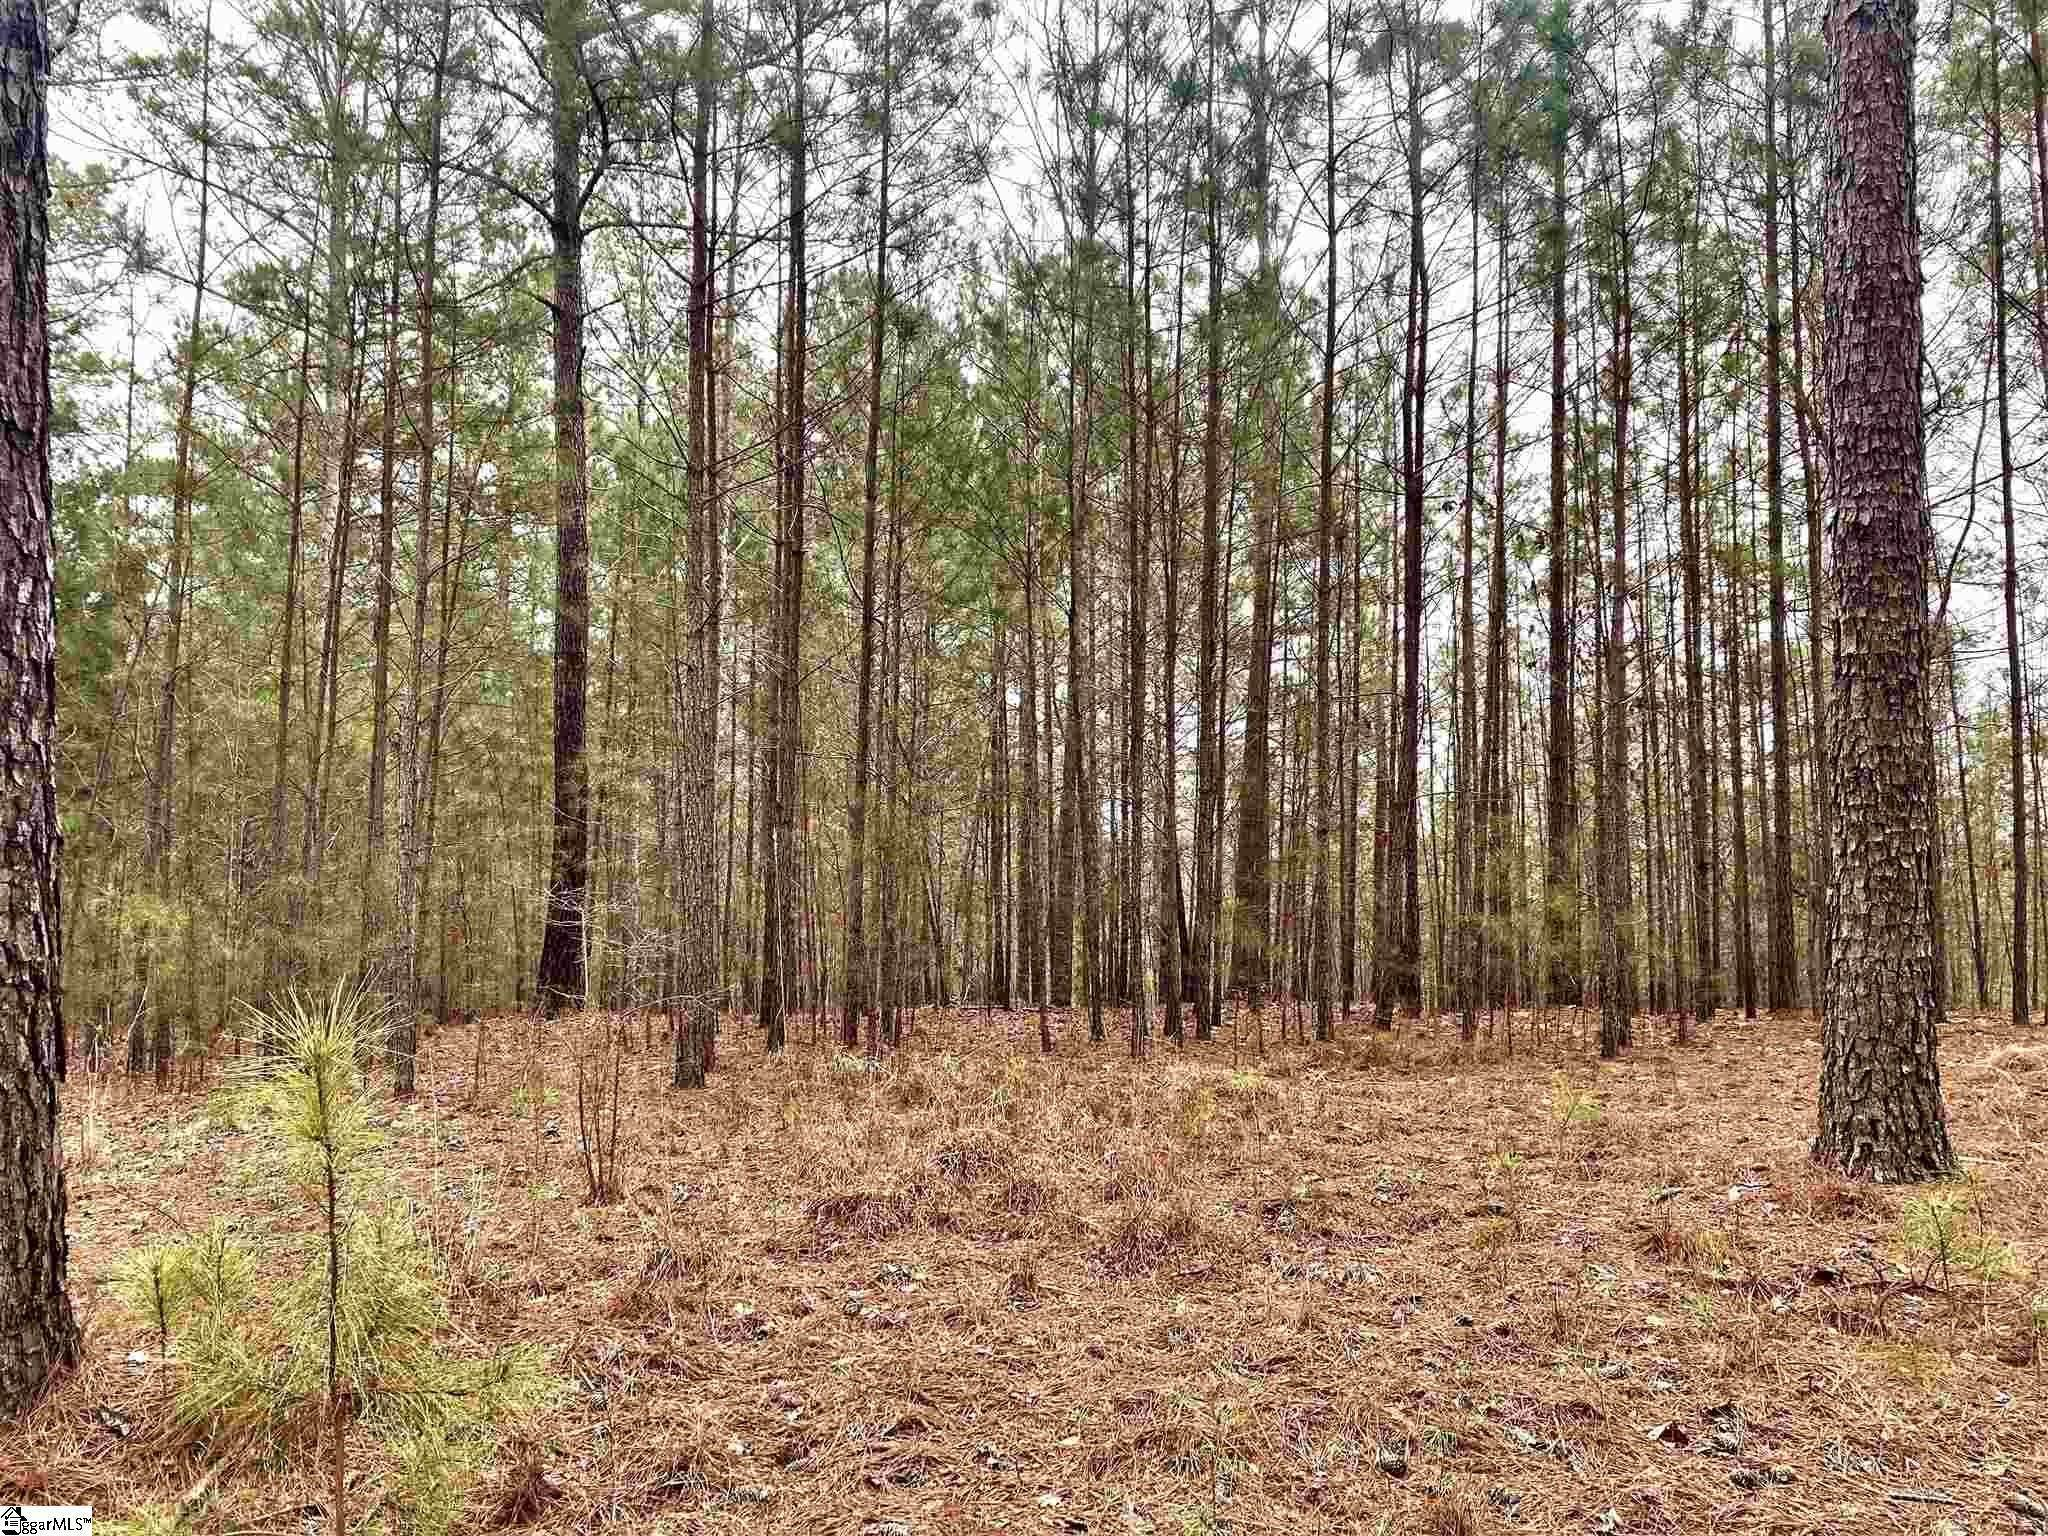 1. Residential Lot for Sale at The Cliffs At Keowee Springs, Six Mile, SC 29682